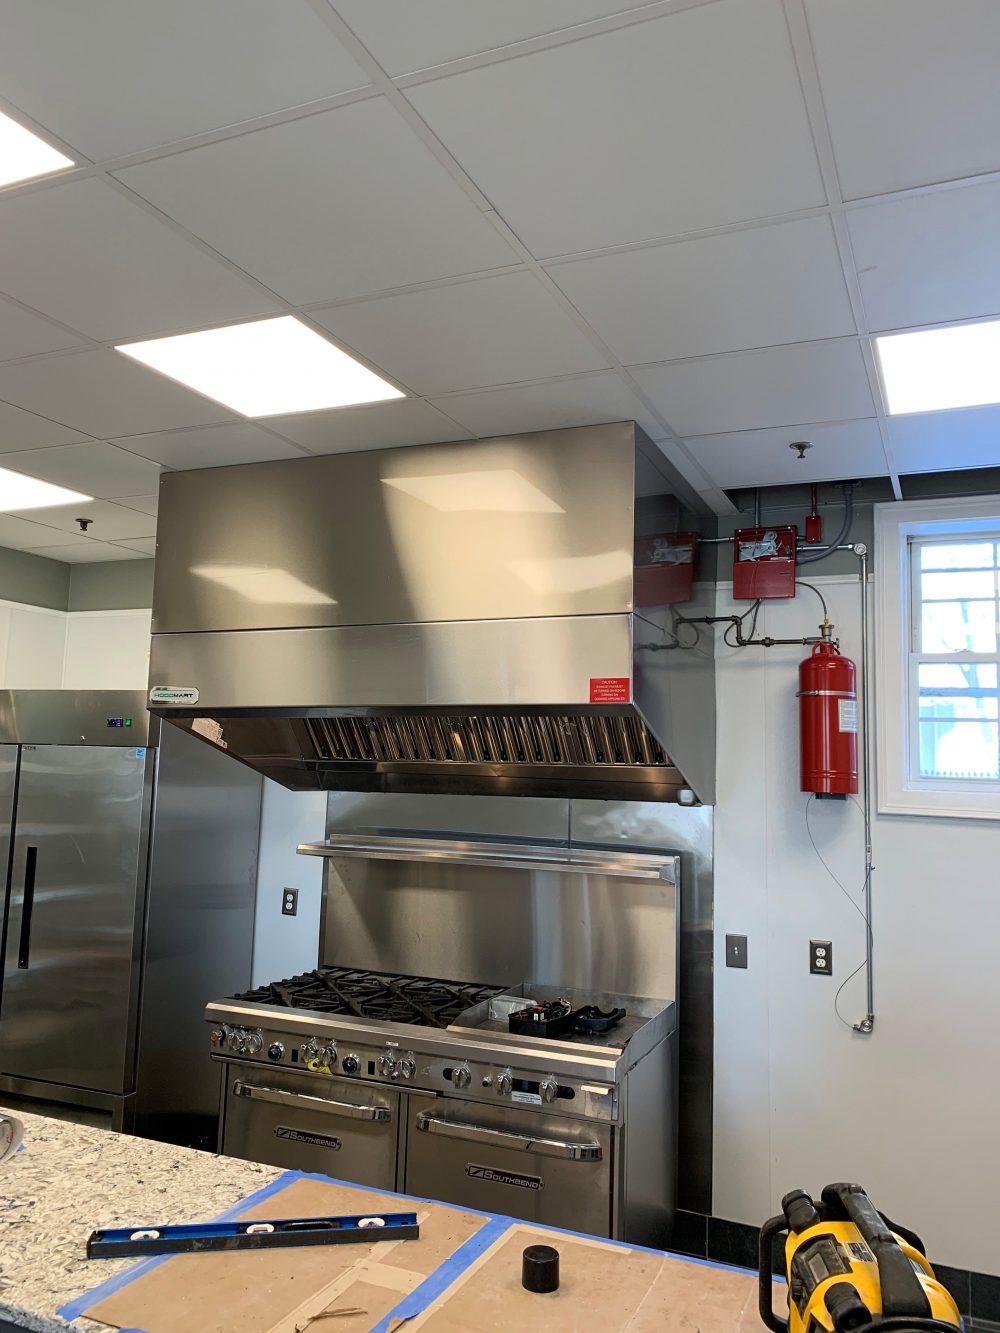 New hood installation and fire suppression system installation in Boston New England area